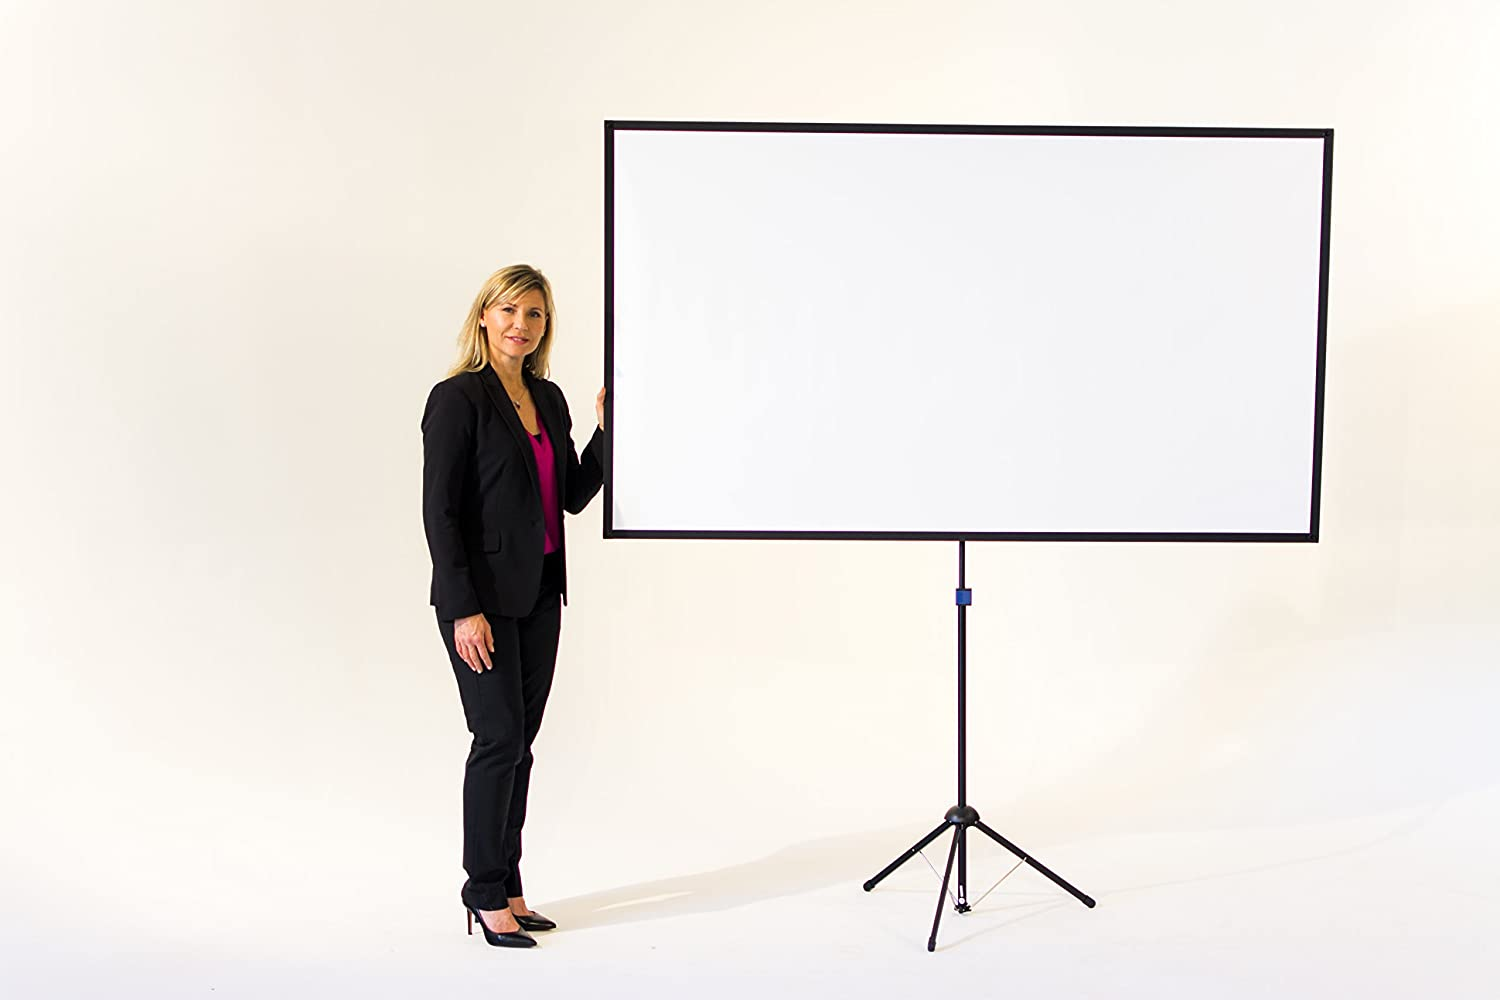 2 Minute Setup 70 inch Includes Carrying Bag 16:9 Format Mounts on Tripod and Wall 9 lbs for Mobile Presentation and Home Entertainment |4K Ultra HD Ready GO-70: 2-in-1 Projector Screen